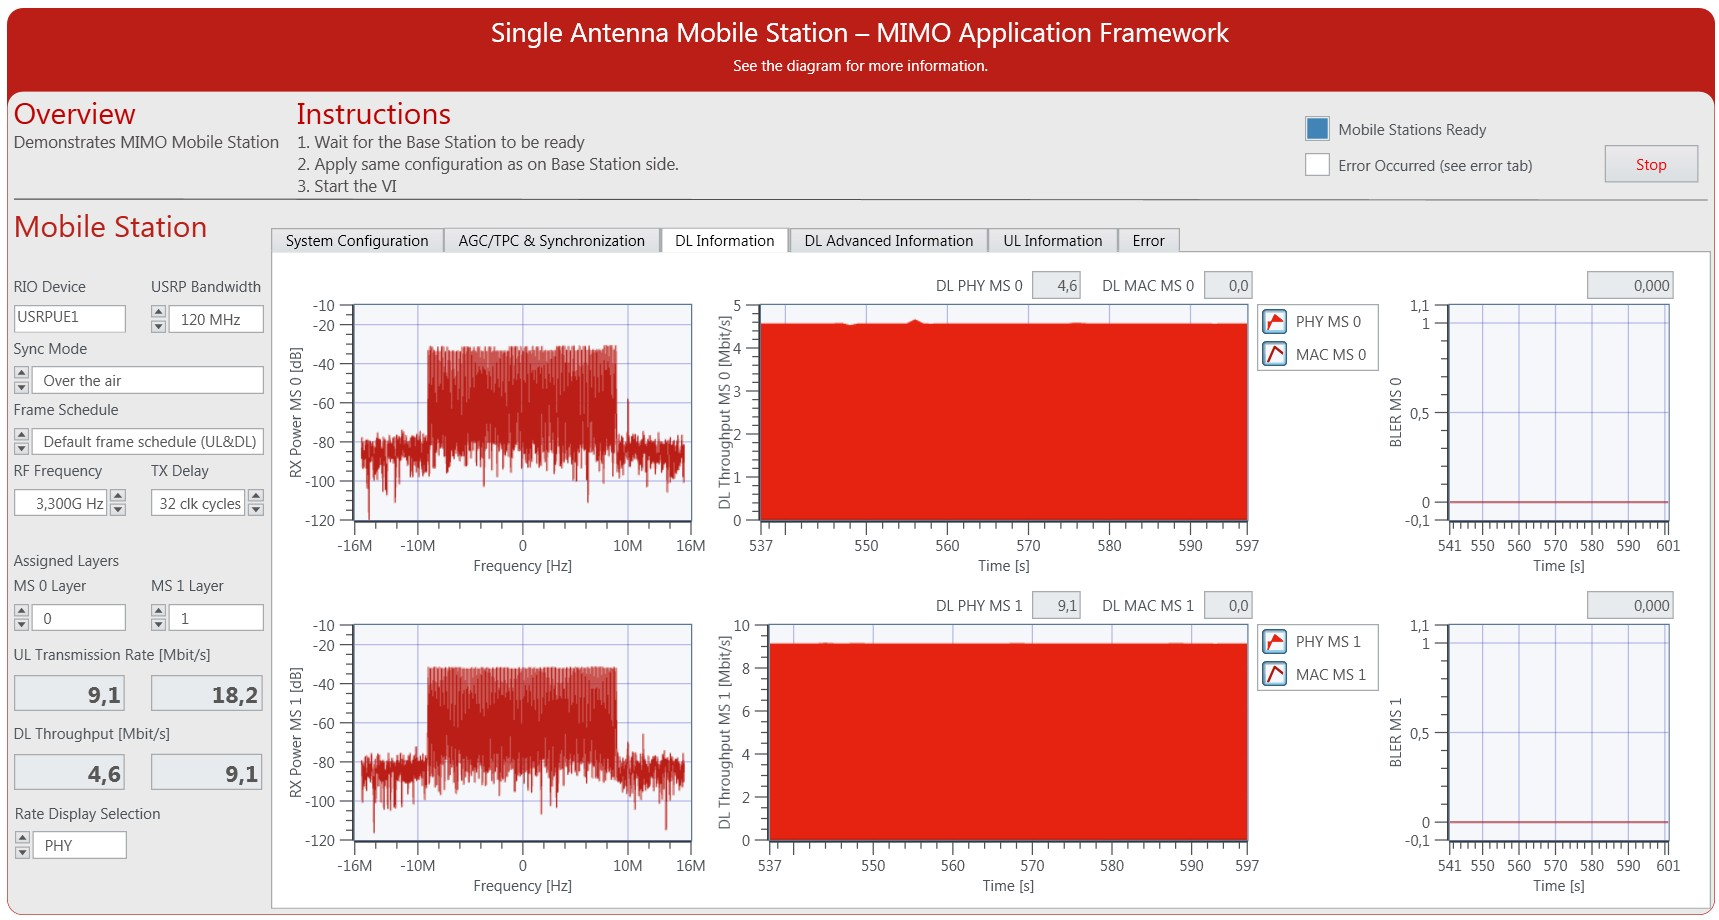 MIMO Application Framework Mobile Station Downlink Received Signal Spectrum and Measured Throughput